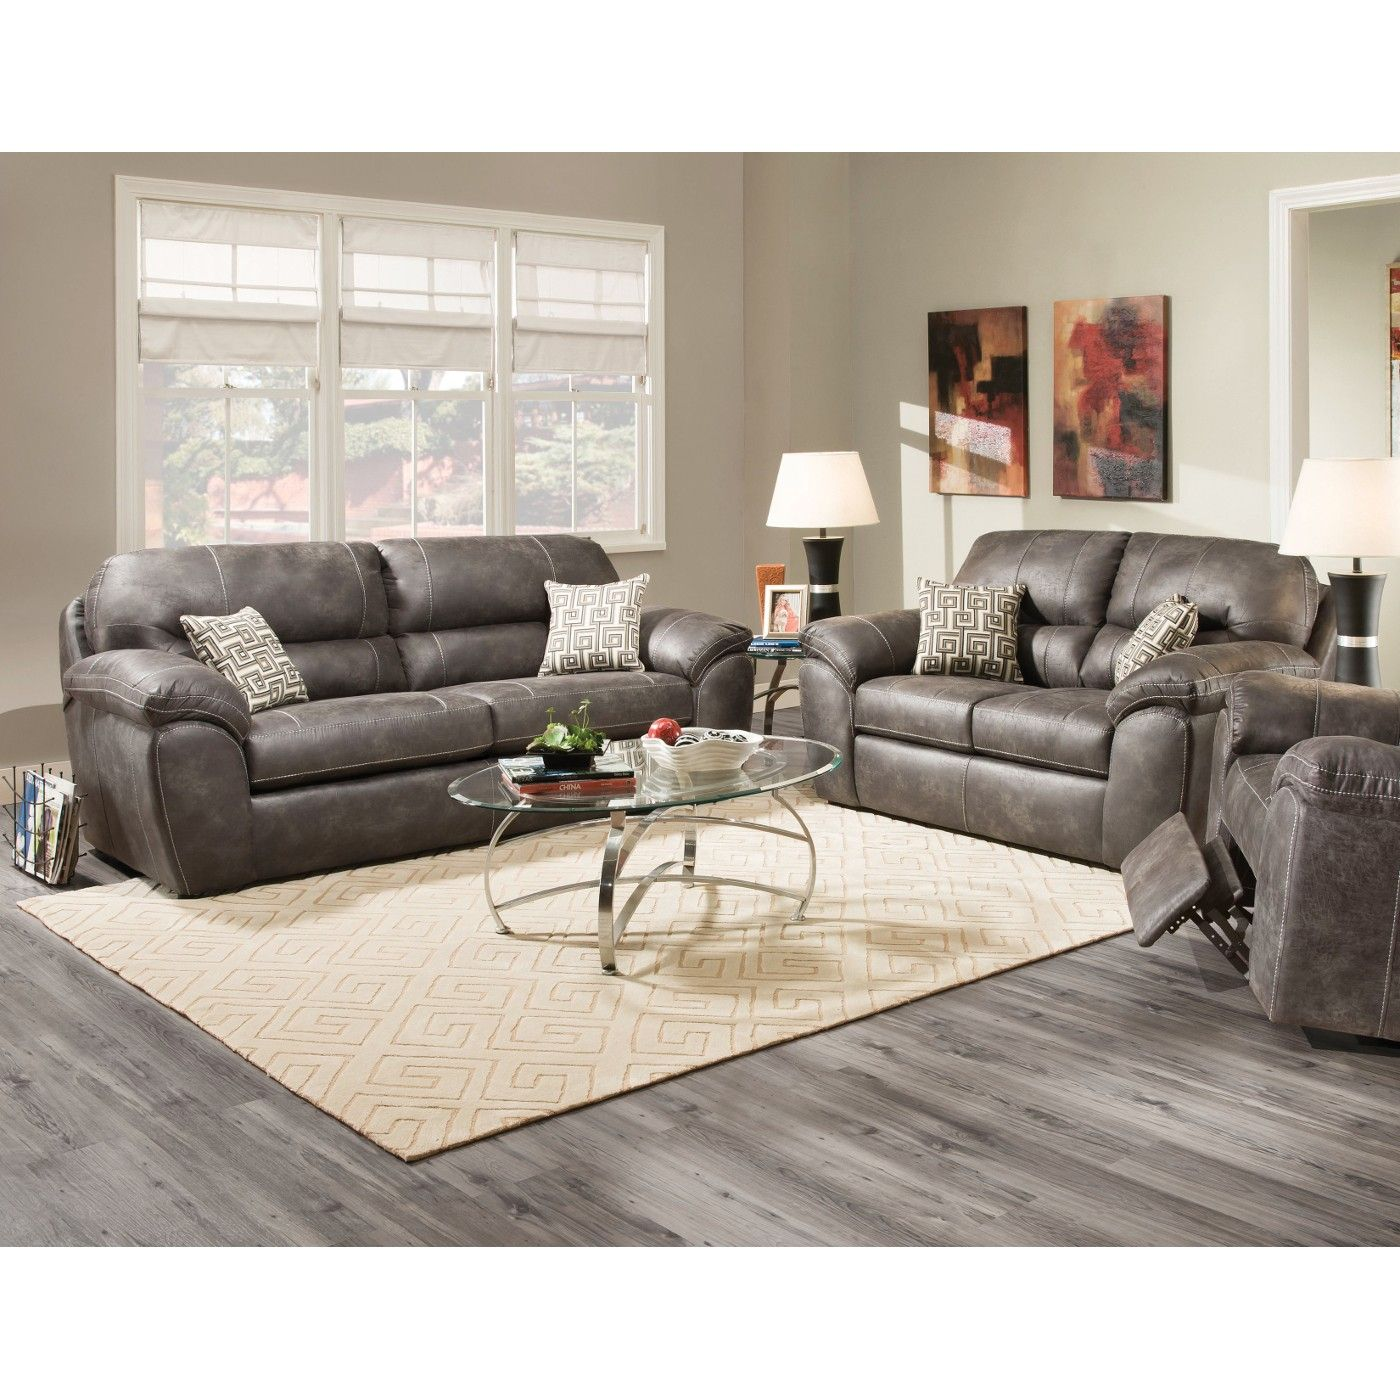 Ulyses Living Room Sofa Loveseat